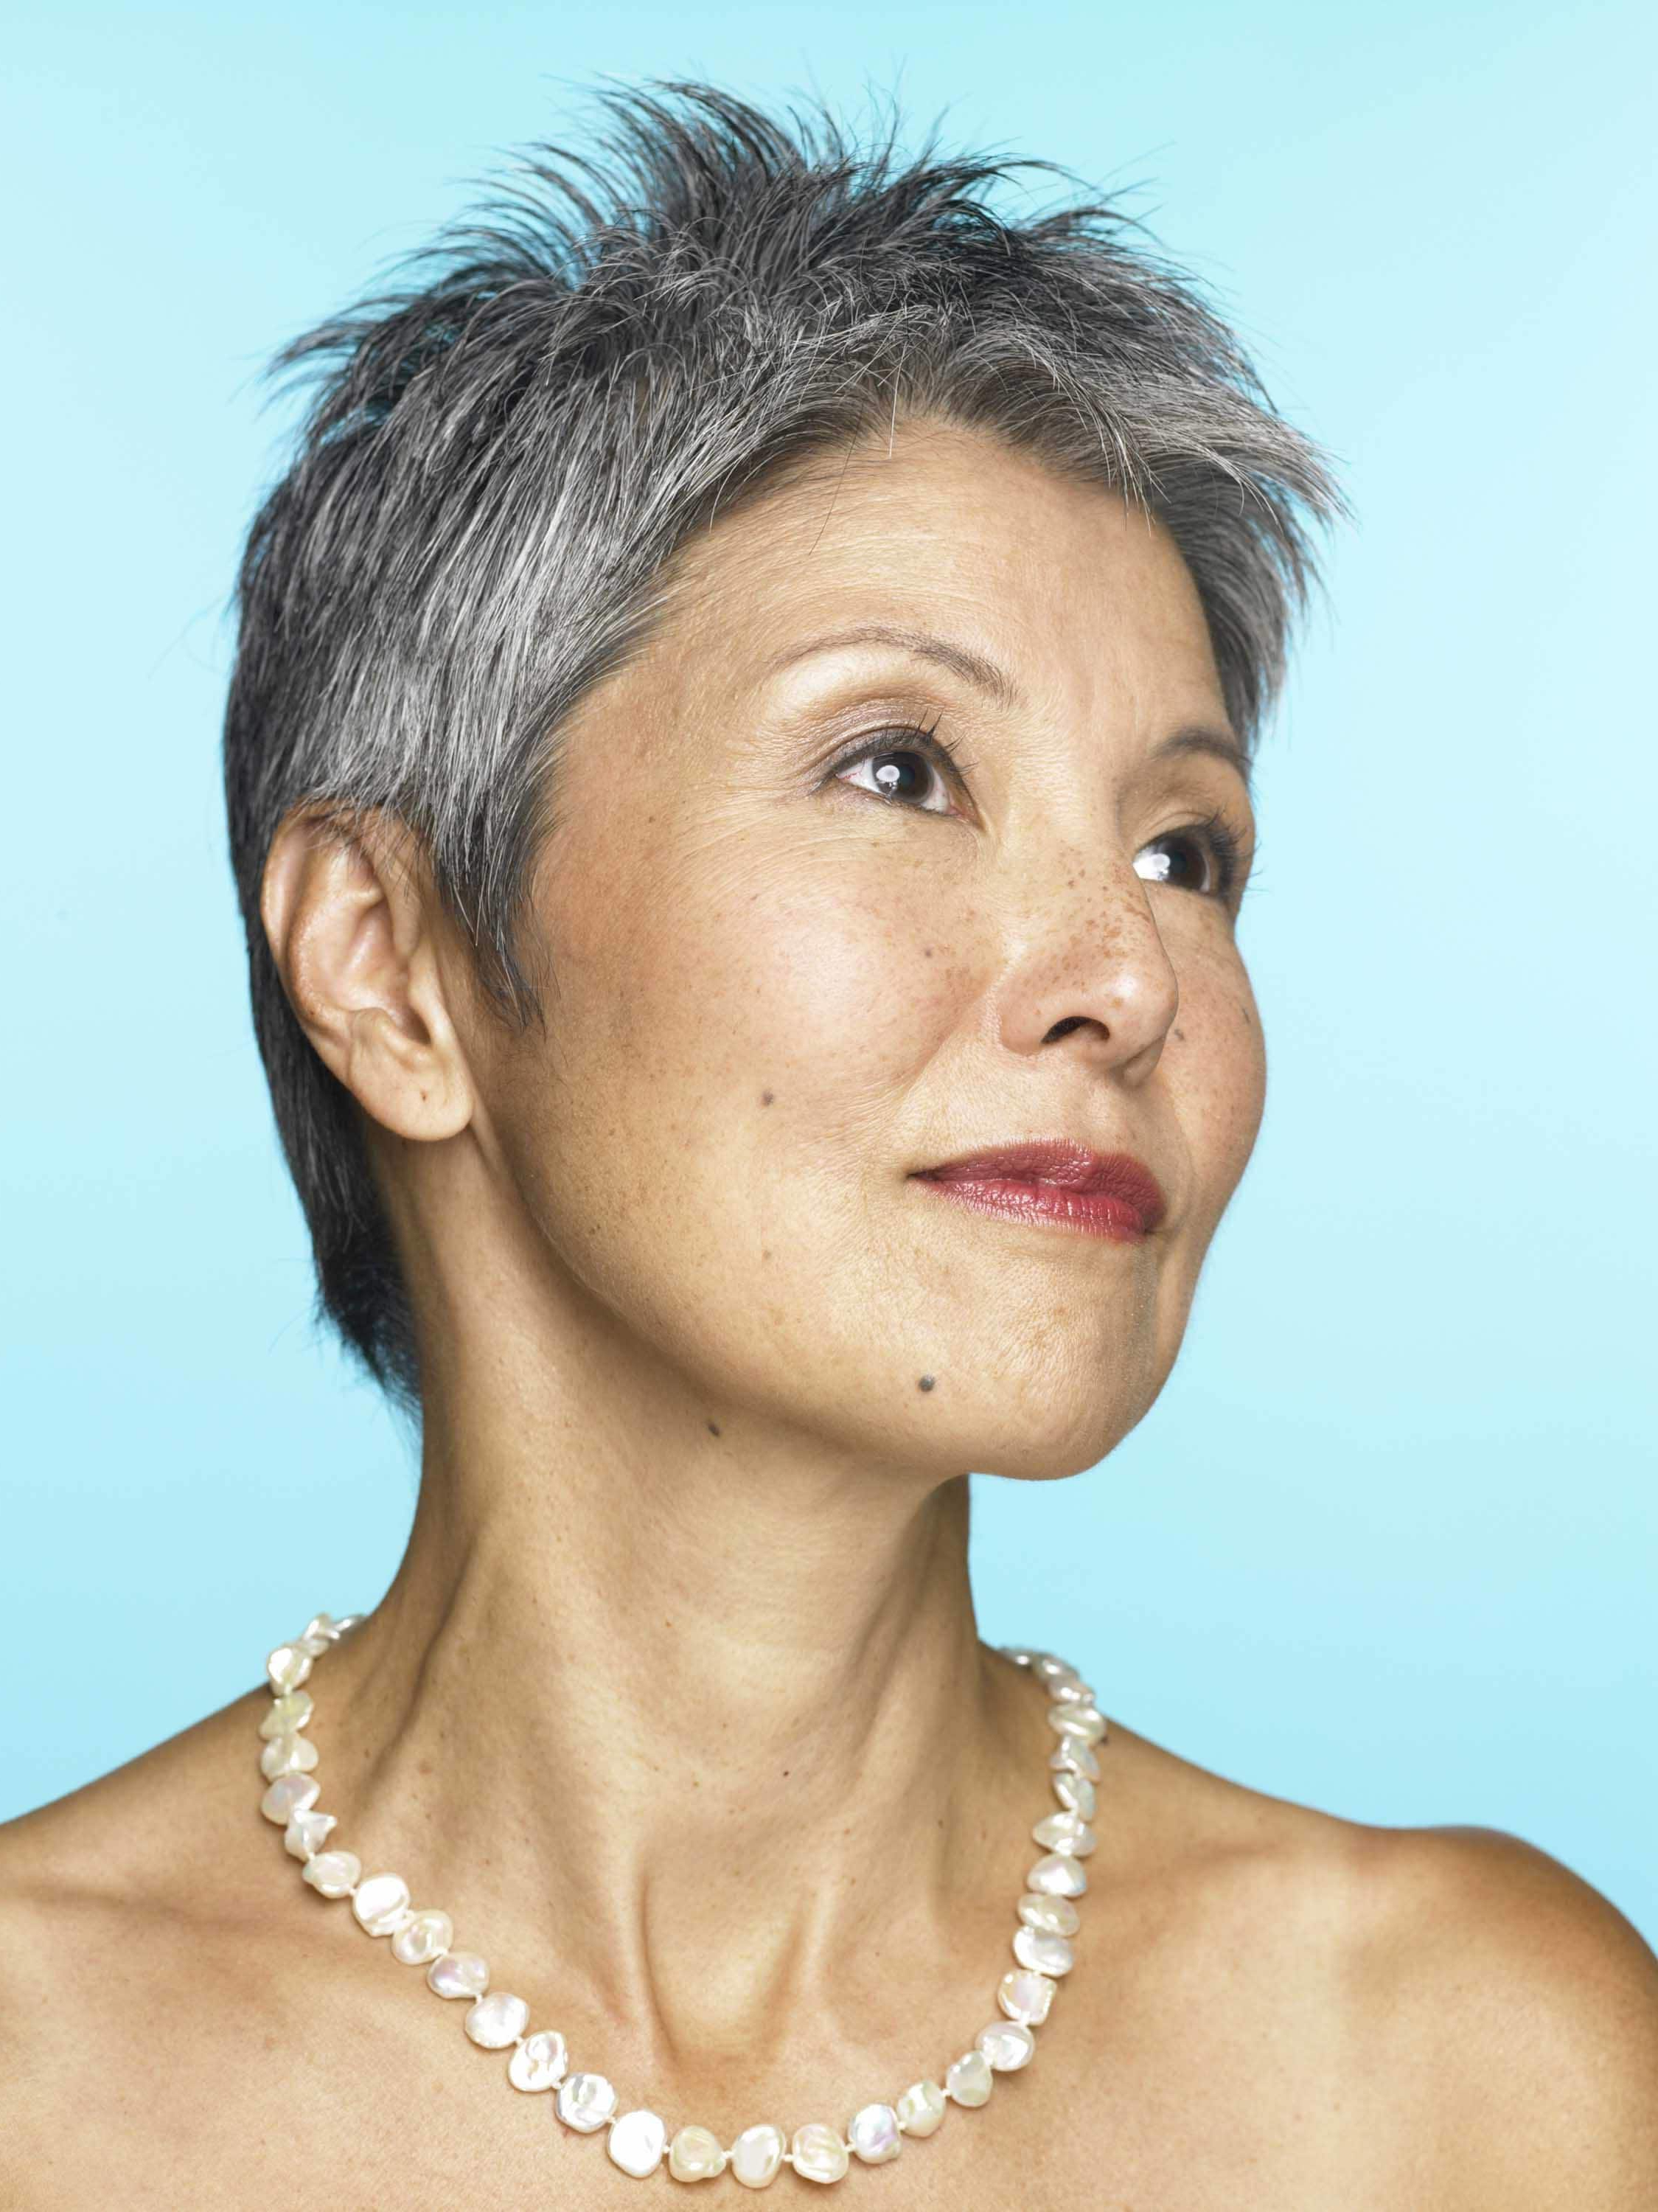 10 Chic Short Gray Hair Looks For Older Women Throughout Short Haircuts With Gray Hair (View 9 of 25)